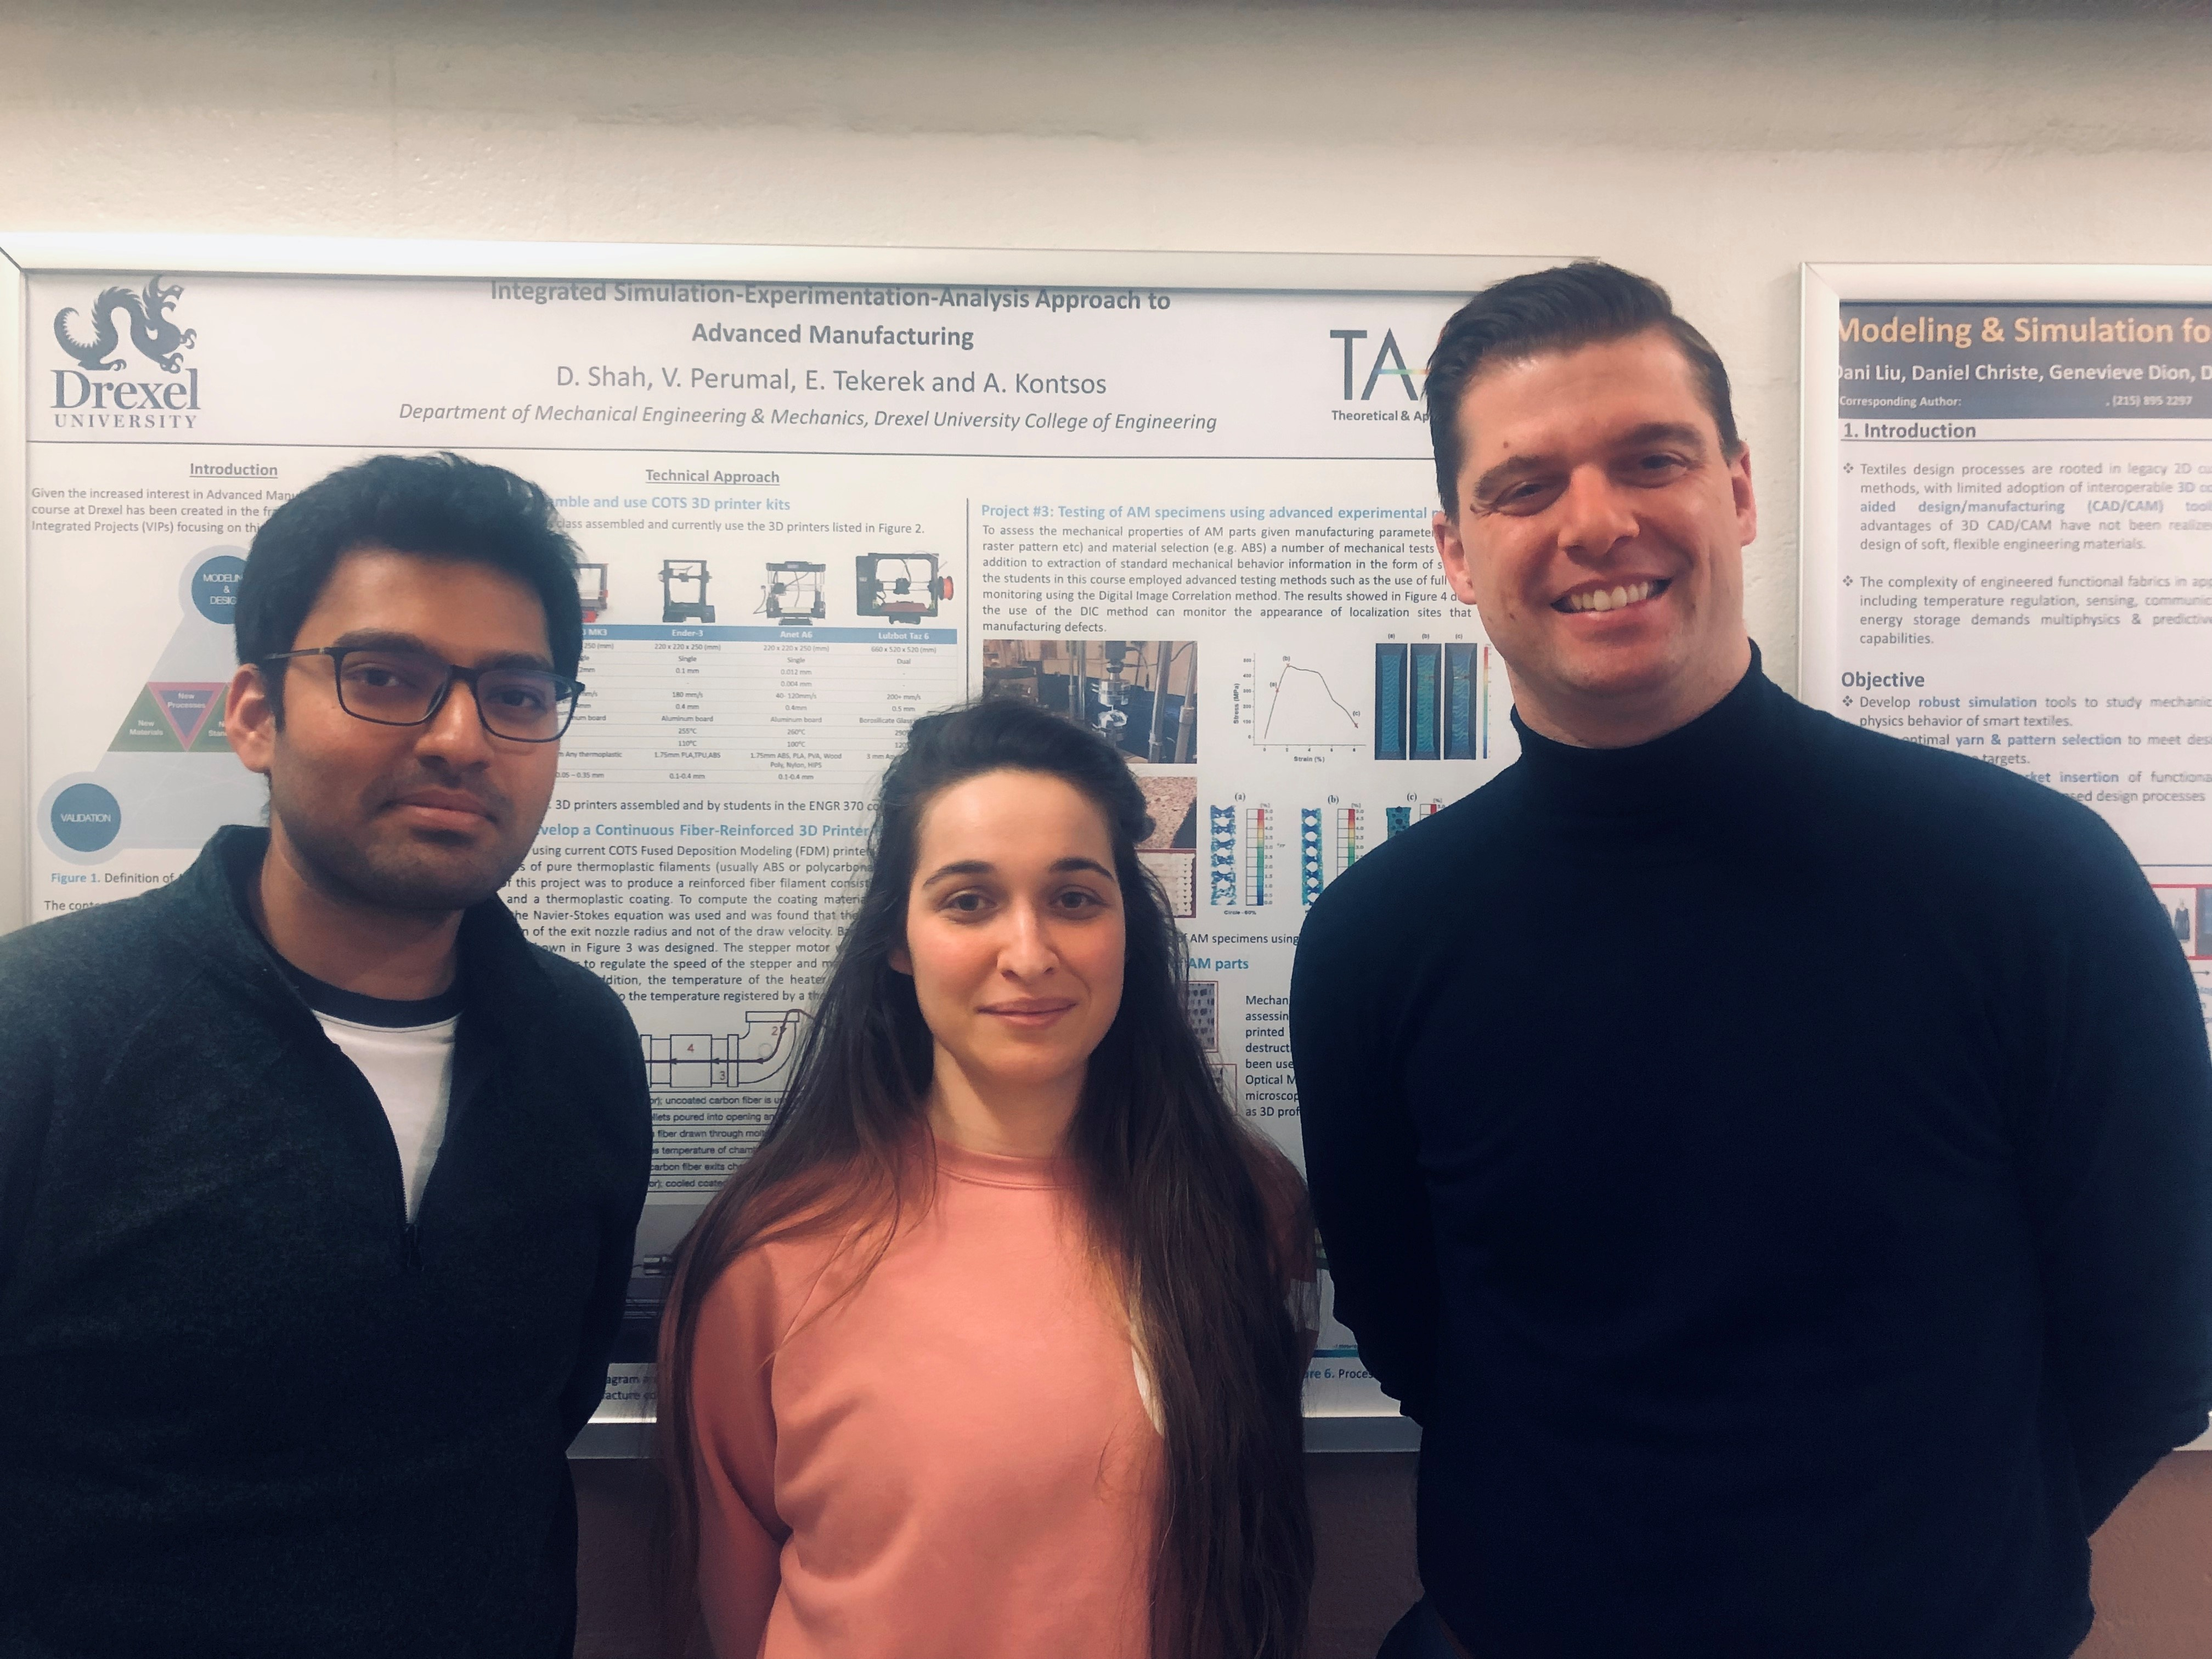 Two men and one woman stand in front of an engineering poster